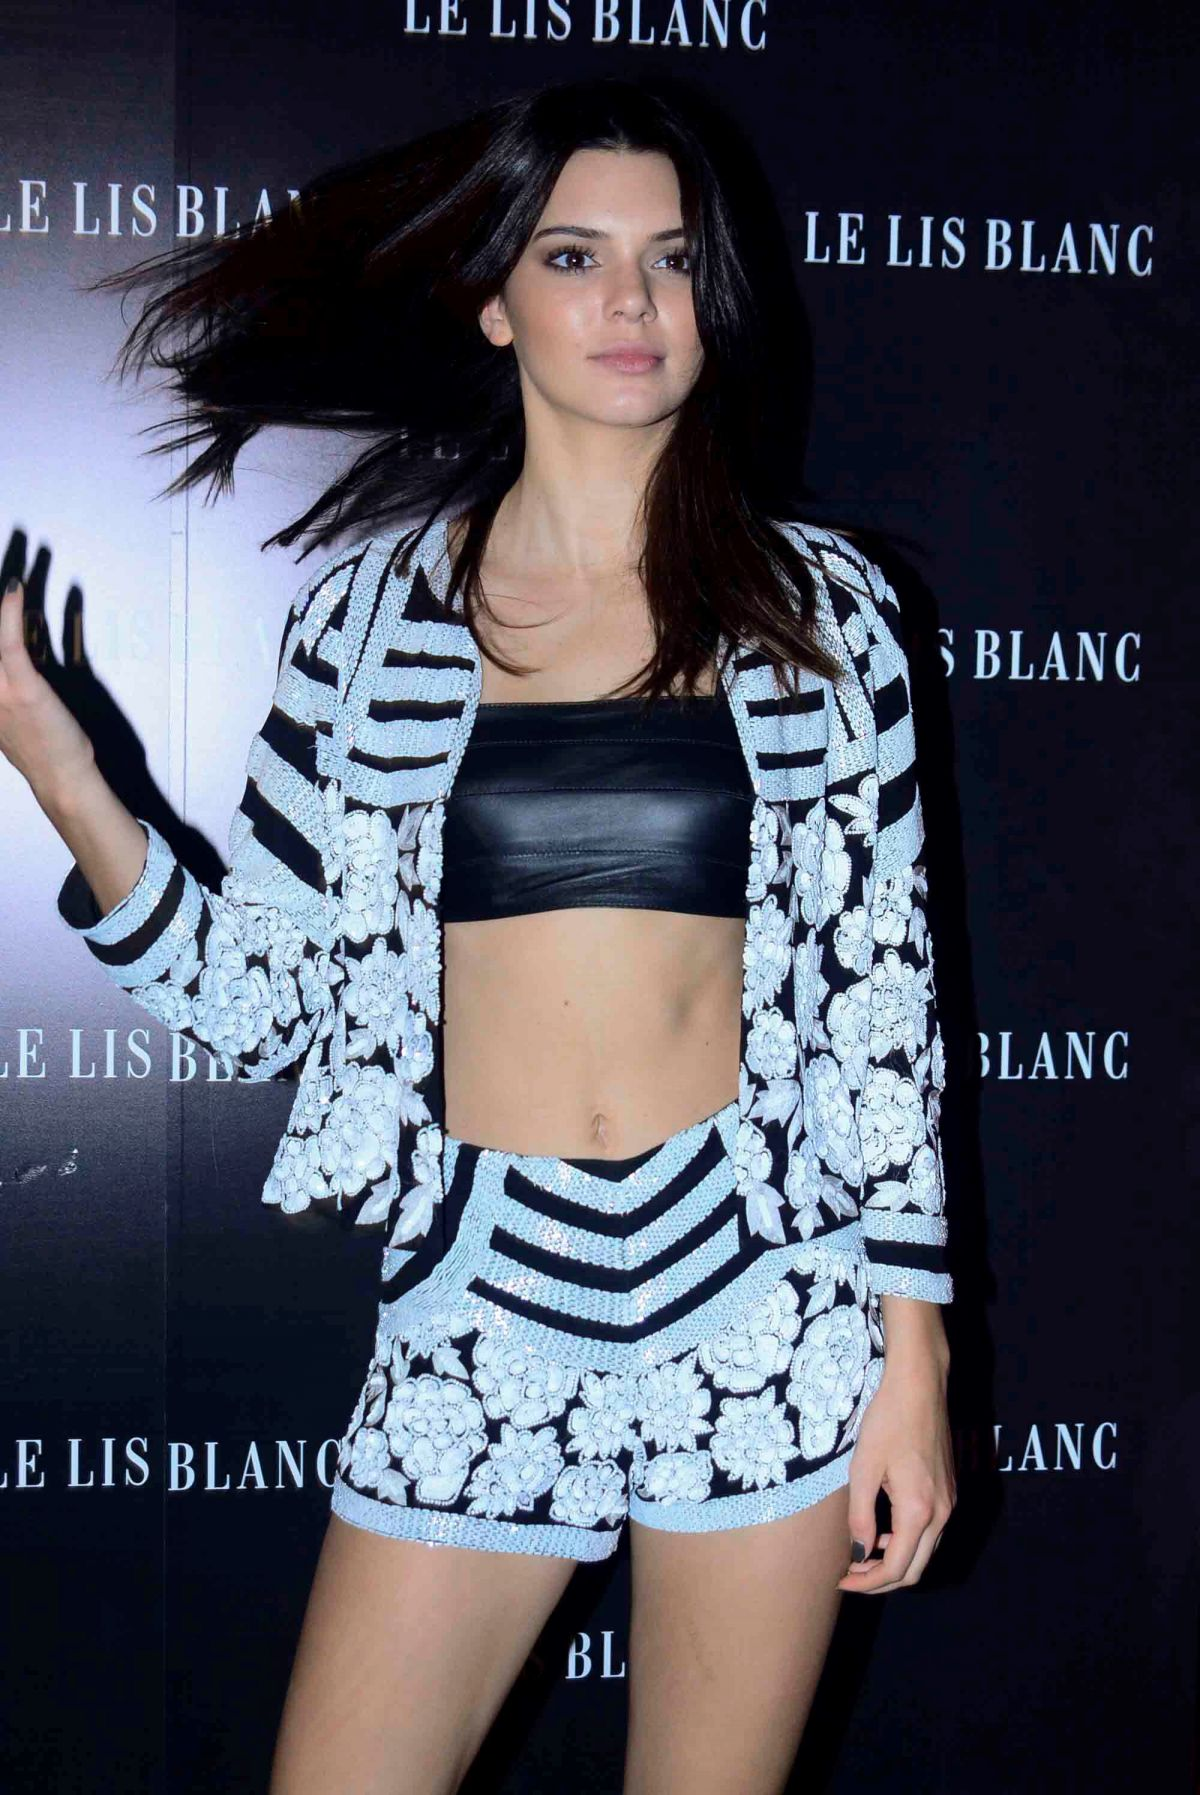 KENDALL JENNER at Le Lis Blanc After Party in Sao Paulo